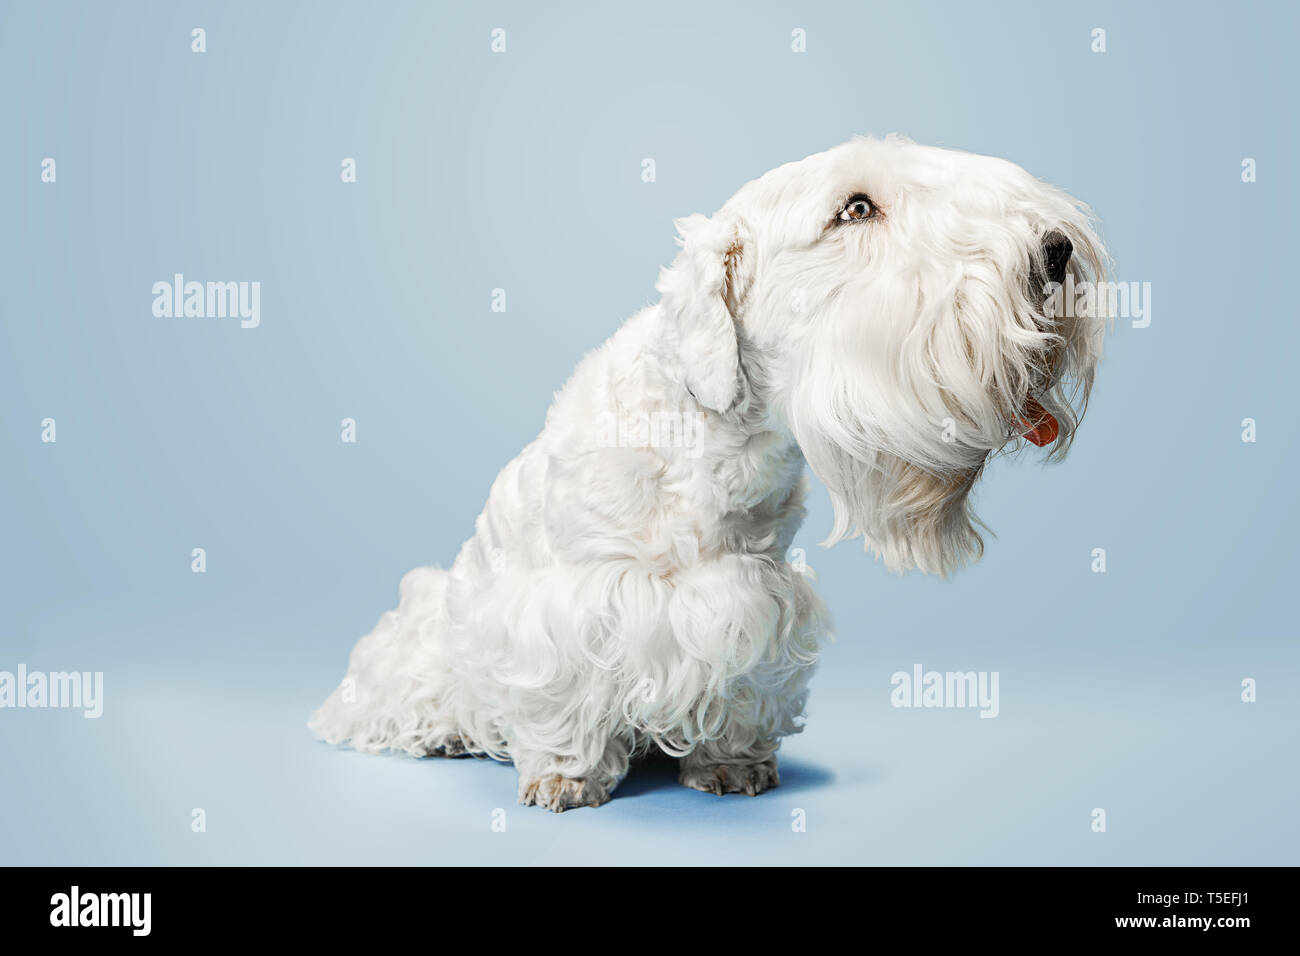 Groomed Terrier Puppy With Fluffy Fur Cute White Little Doggy Or Pet Is Playing And Running Isolated On Blue Background Studio Photoshot Negative Space To Insert Your Text Or Image Stock Photo